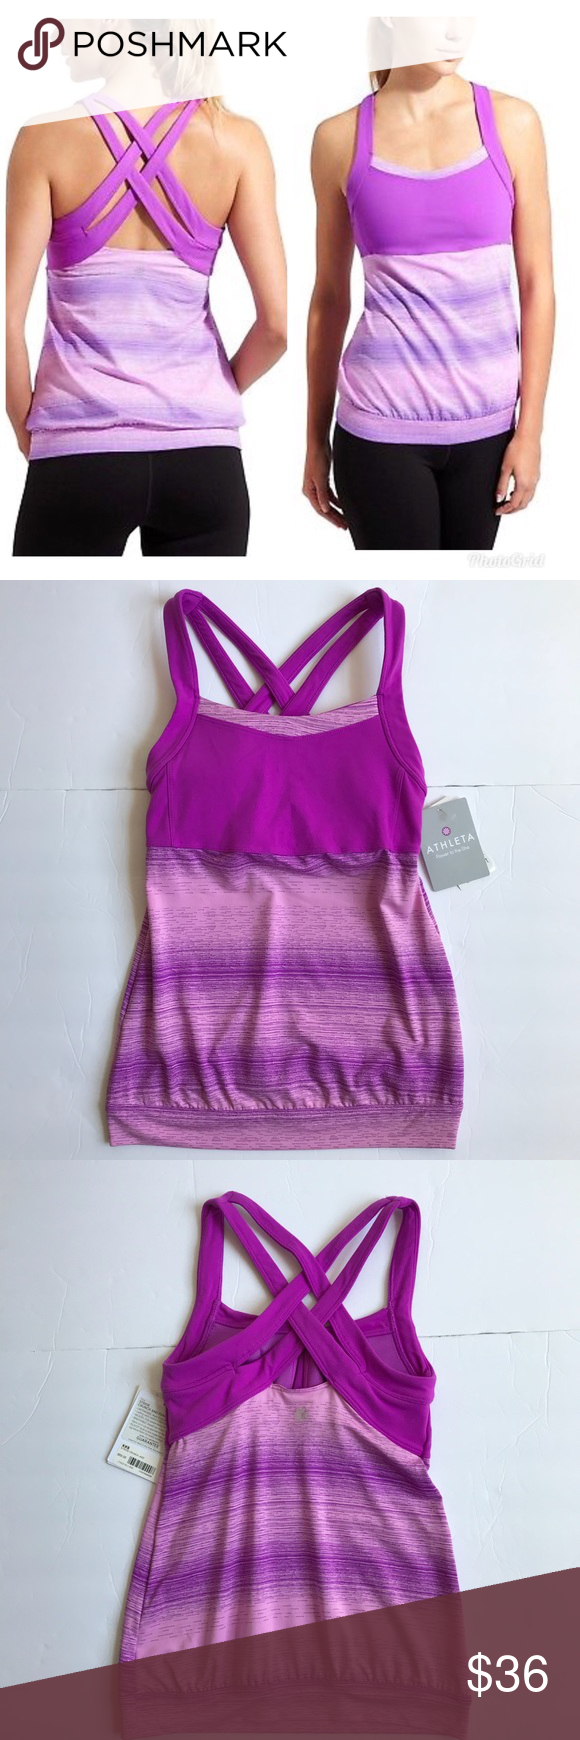 Athleta Stride Crunch and Punch Tank Top Athleta Stride